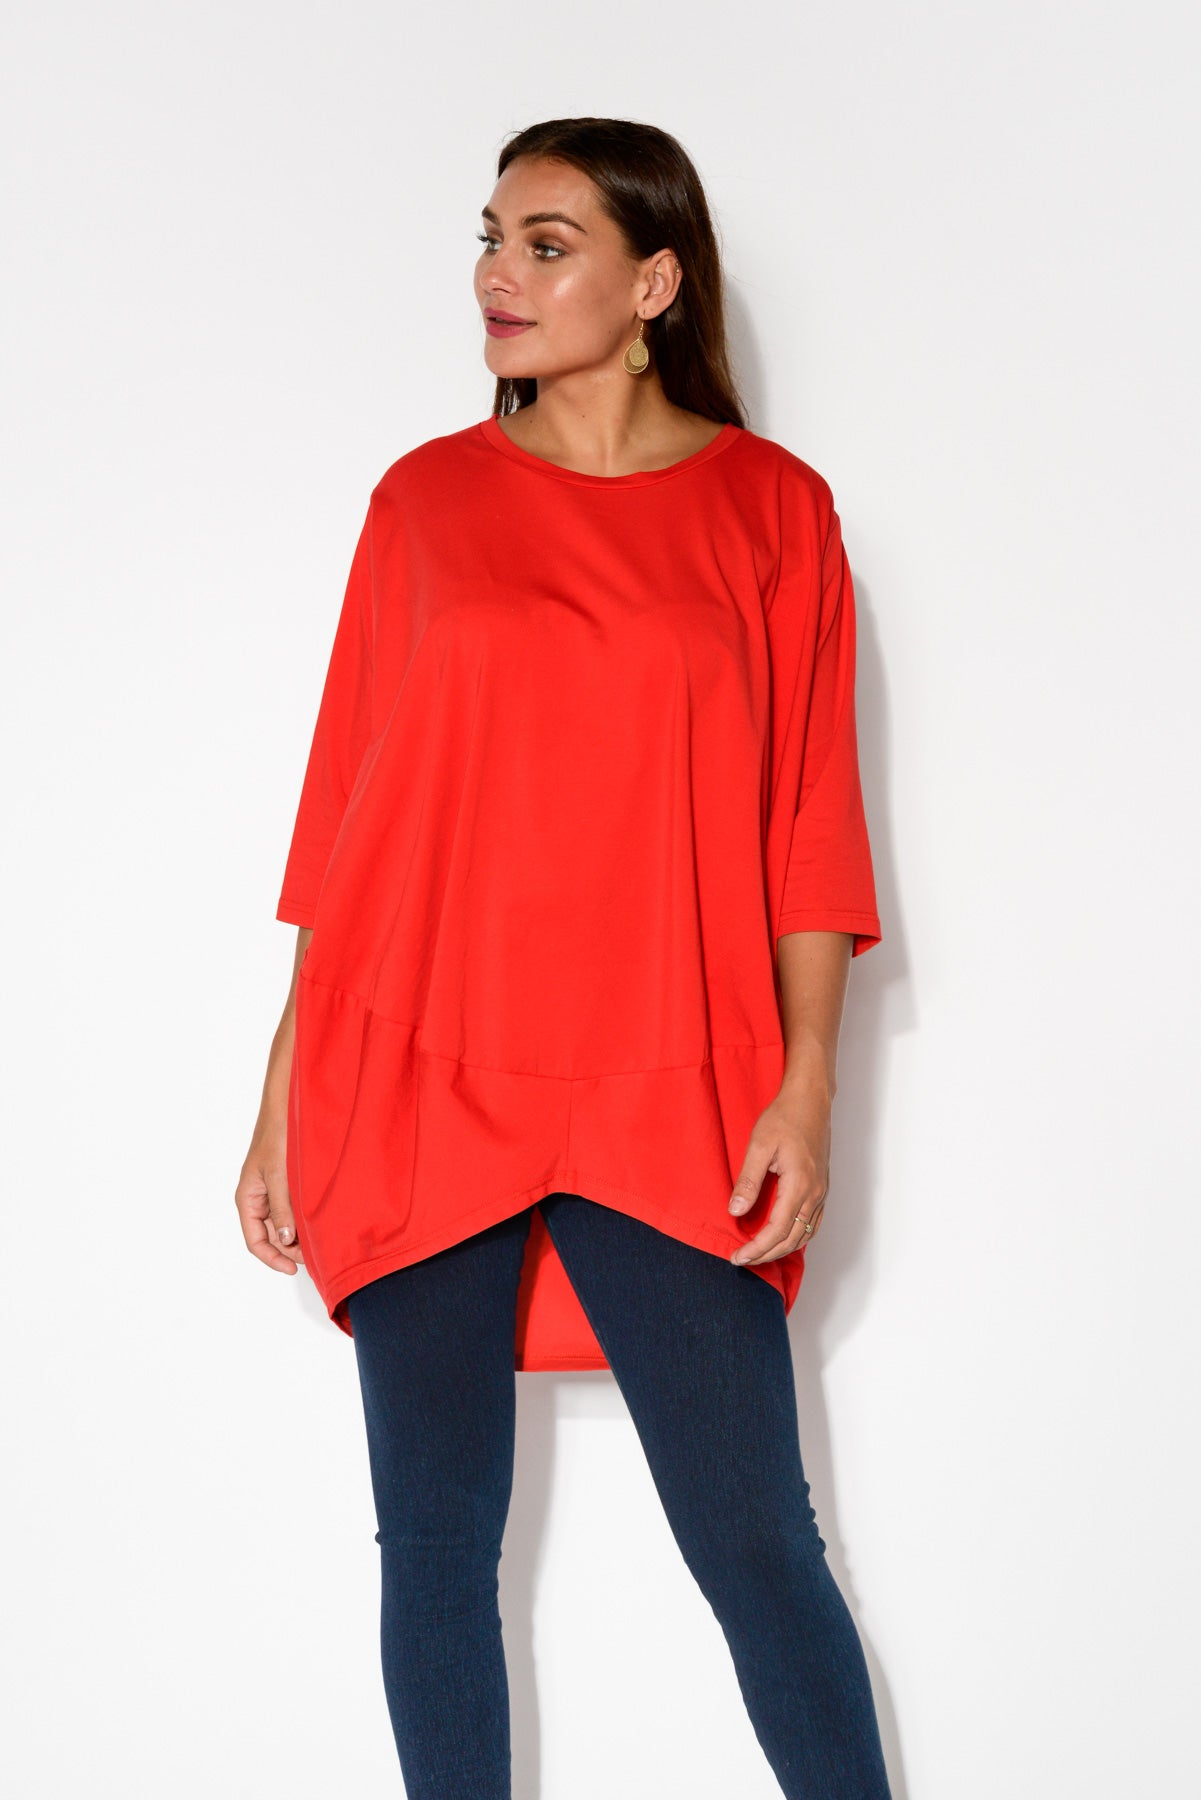 Red Billow Cotton Top - Blue Bungalow